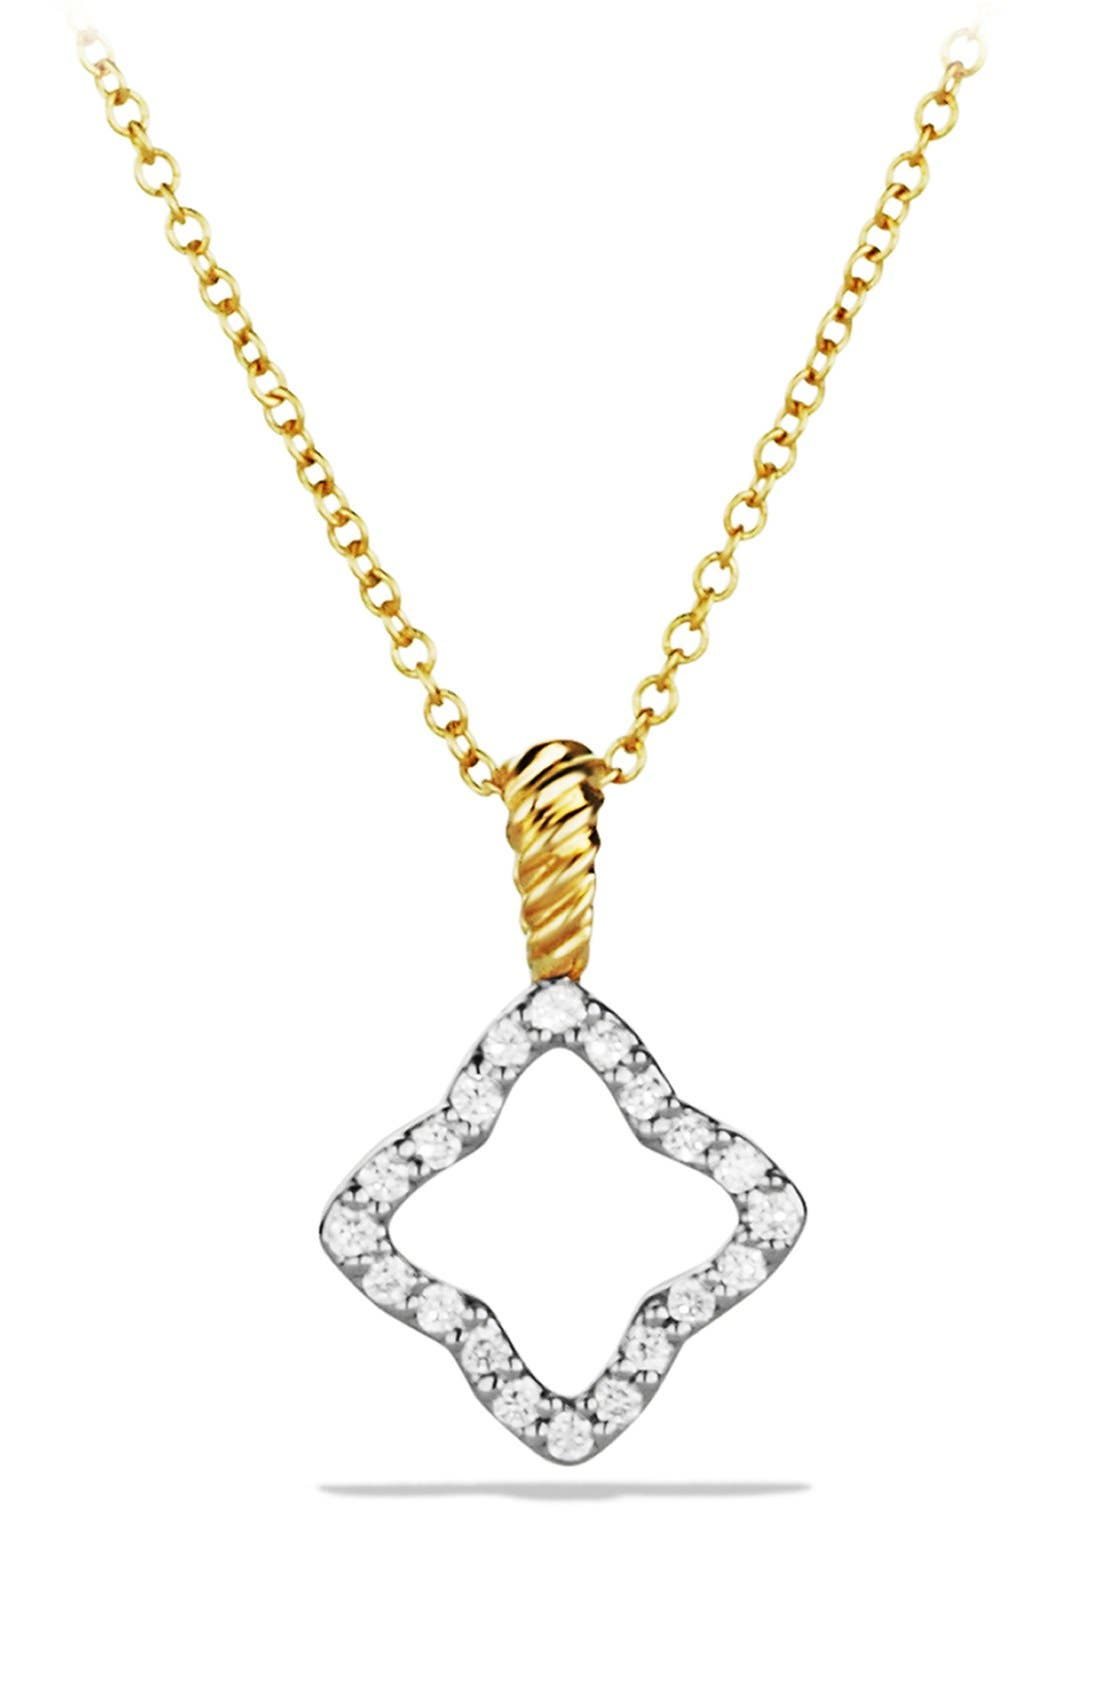 Alternate Image 1 Selected - David Yurman 'Cable Collectibles' Quatrefoil Pendant with Diamonds in Gold on Chain